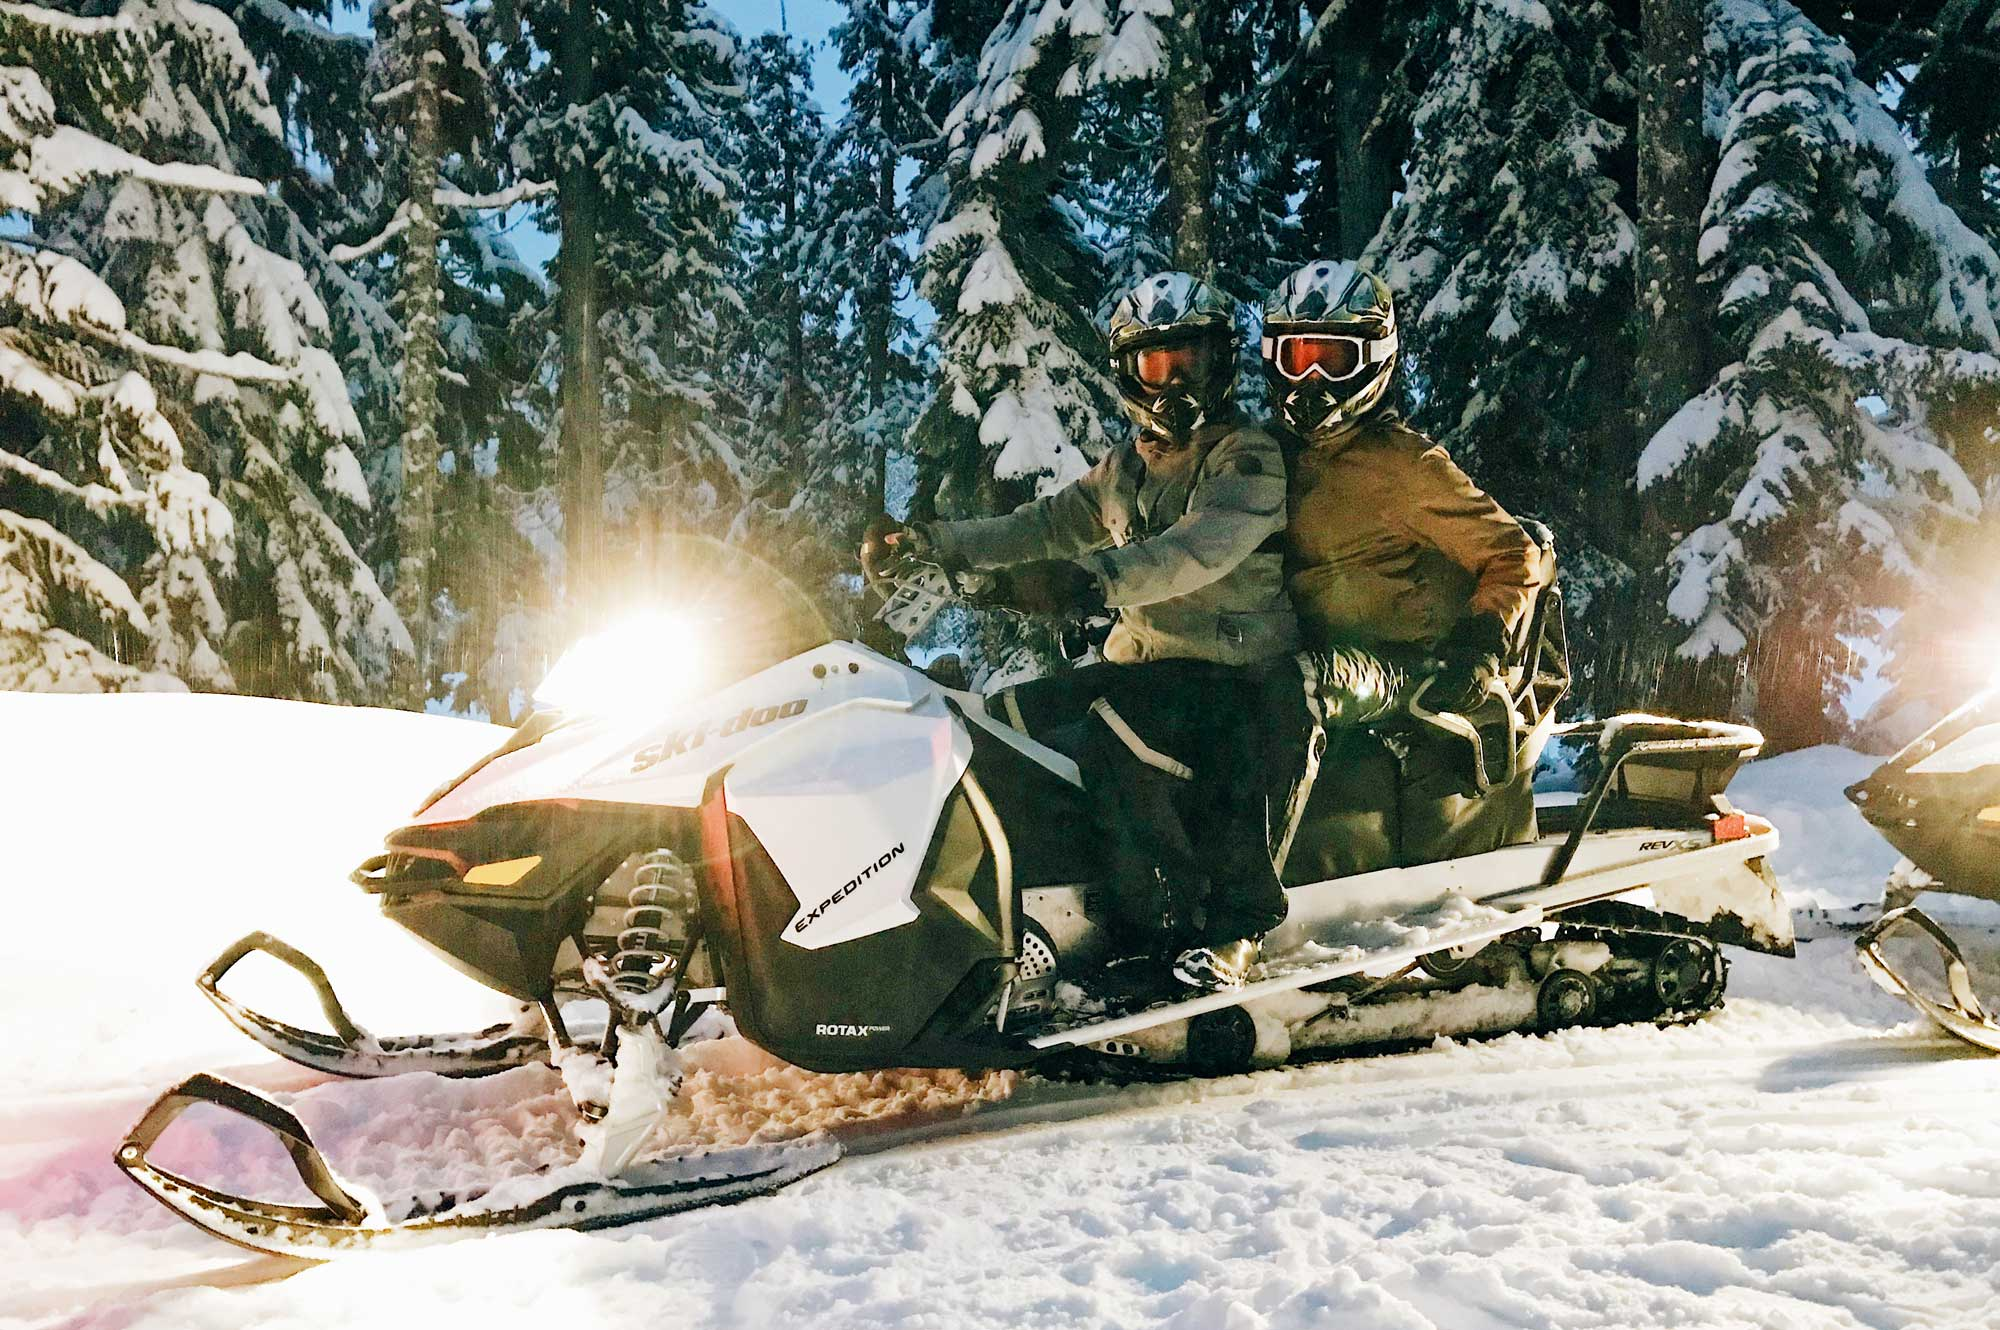 The Adventure Group Whistler | Zip Lining Snowmobiling TAG Whistler © Coupleofmen.com